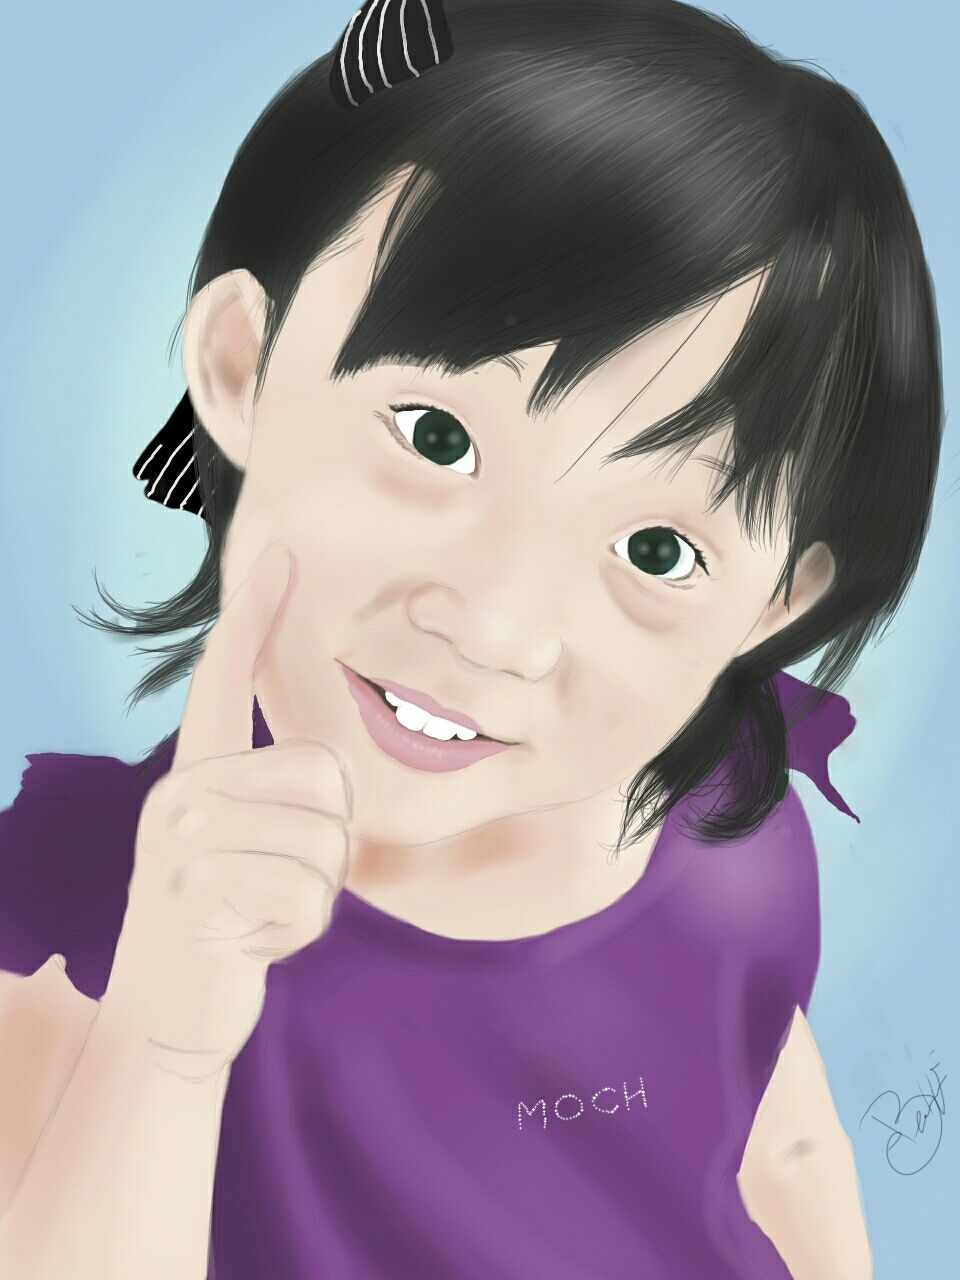 A sense of wonderment on this scale is hard to contain.   #cute #colorful #portrait #drawing #smile #girl #model #people